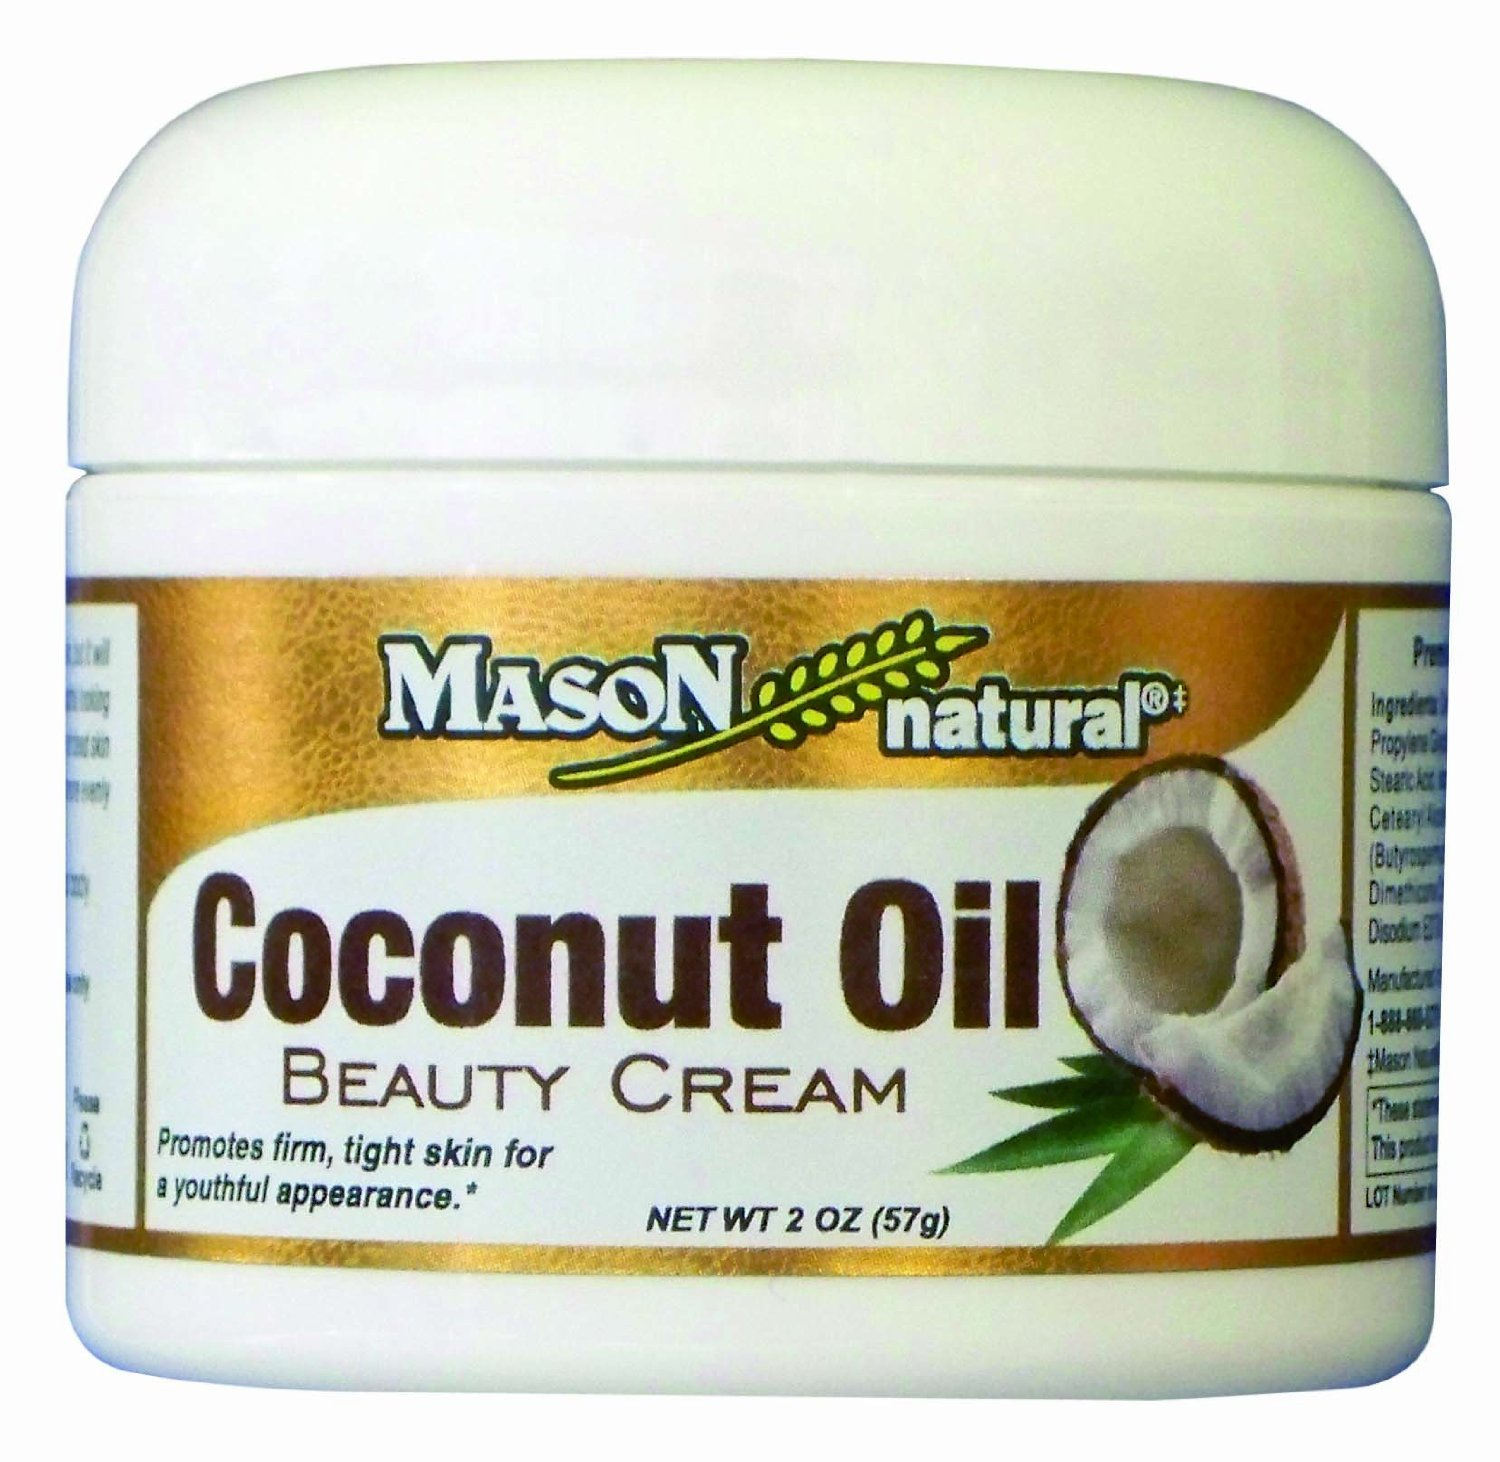 MASON natural Coconut Oil Beauty Cream, 2 Ounce